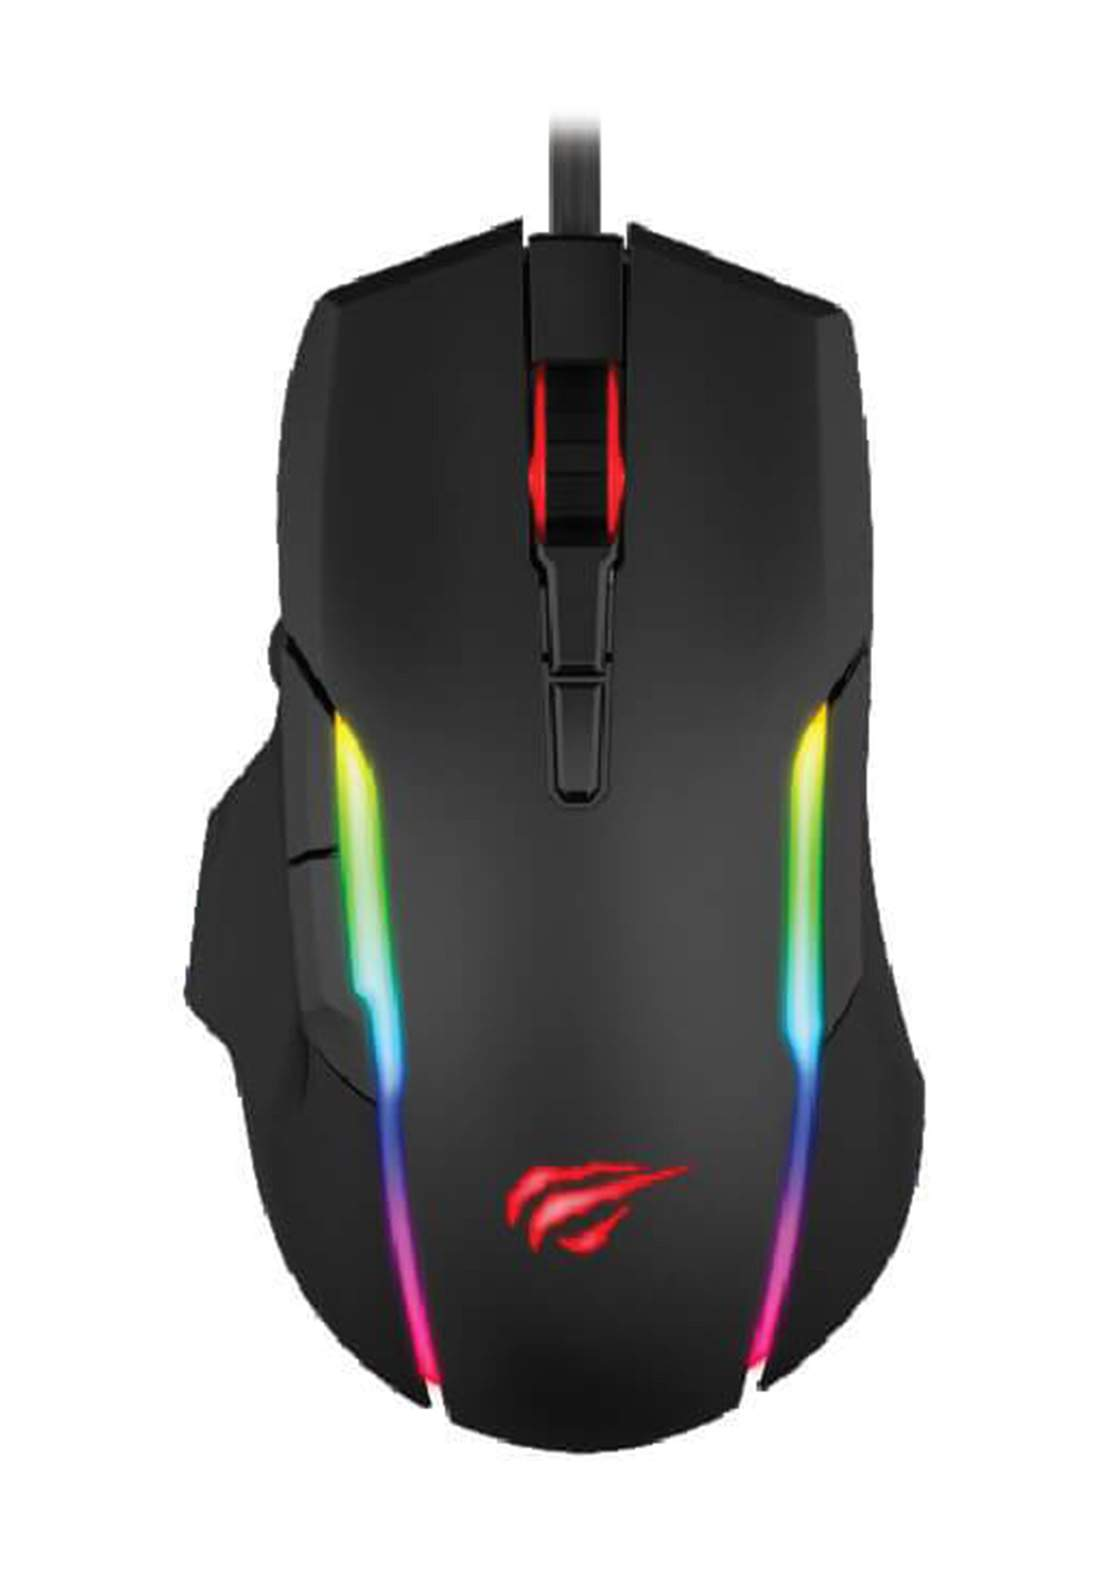 Havit MS1012a Gaming Mouse ماوس